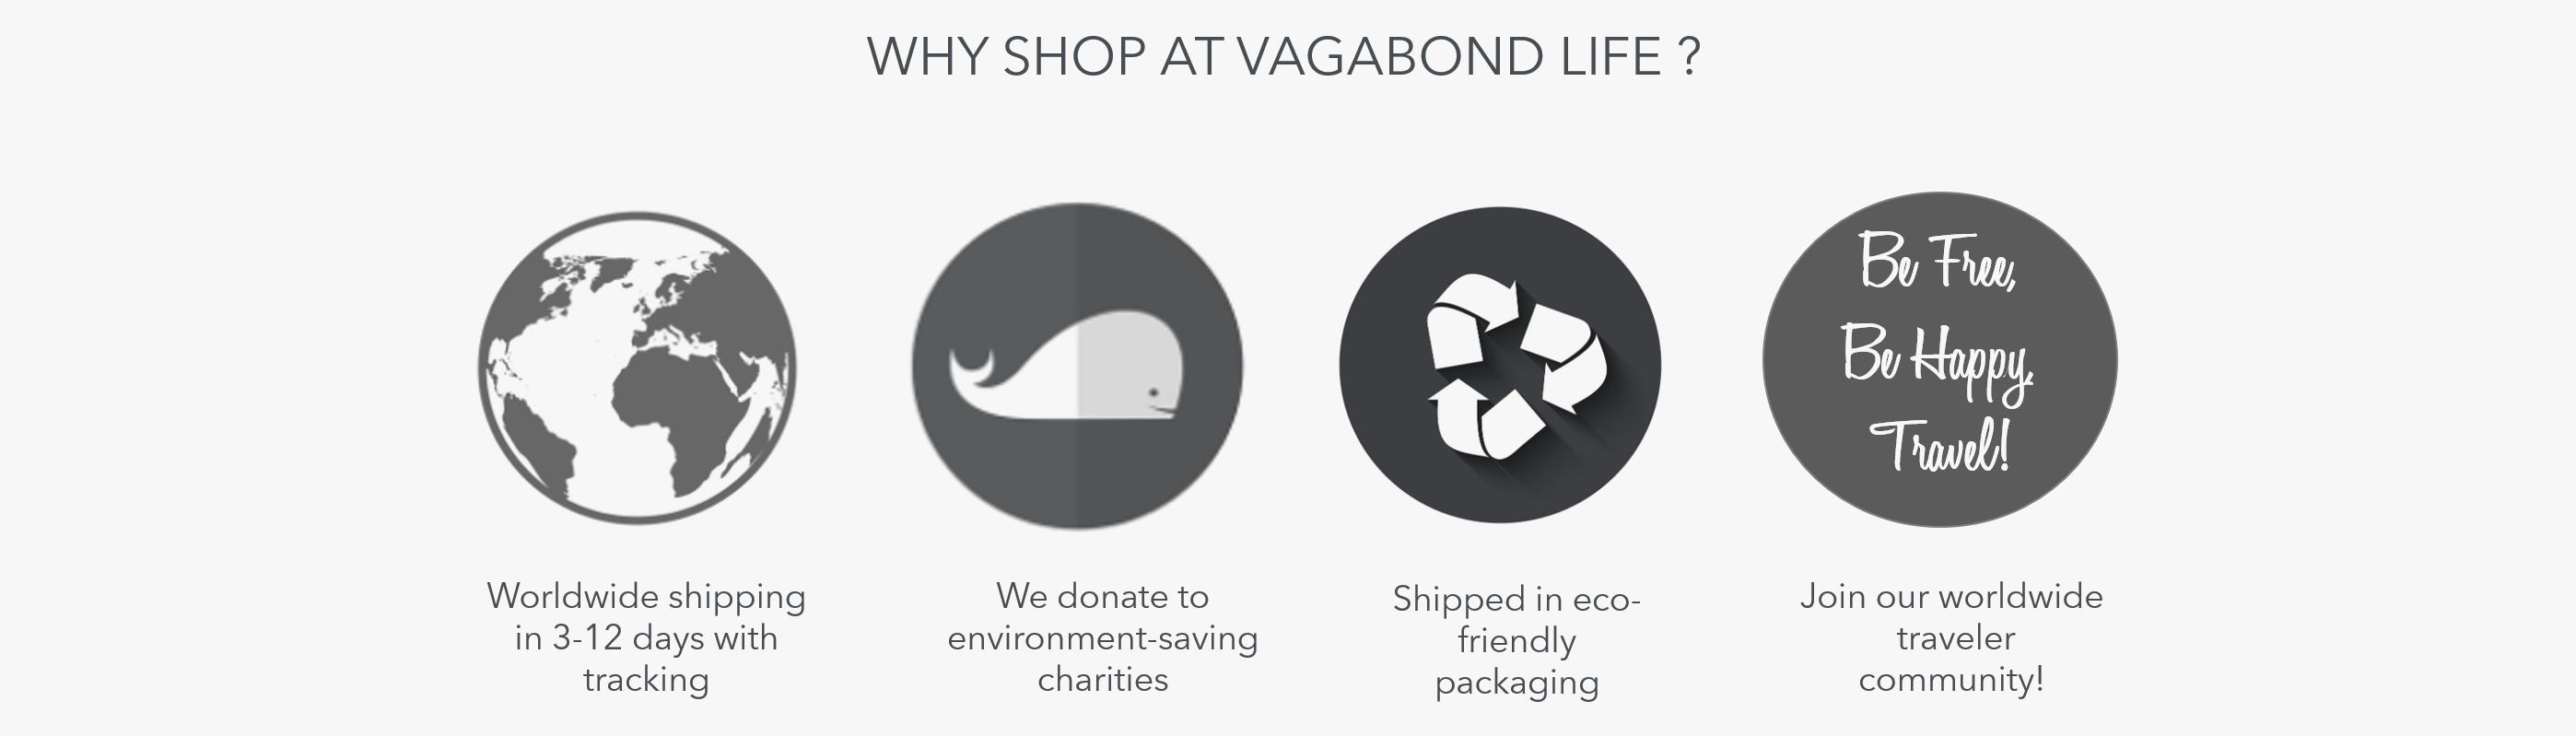 Why Shop At Vagabond Life